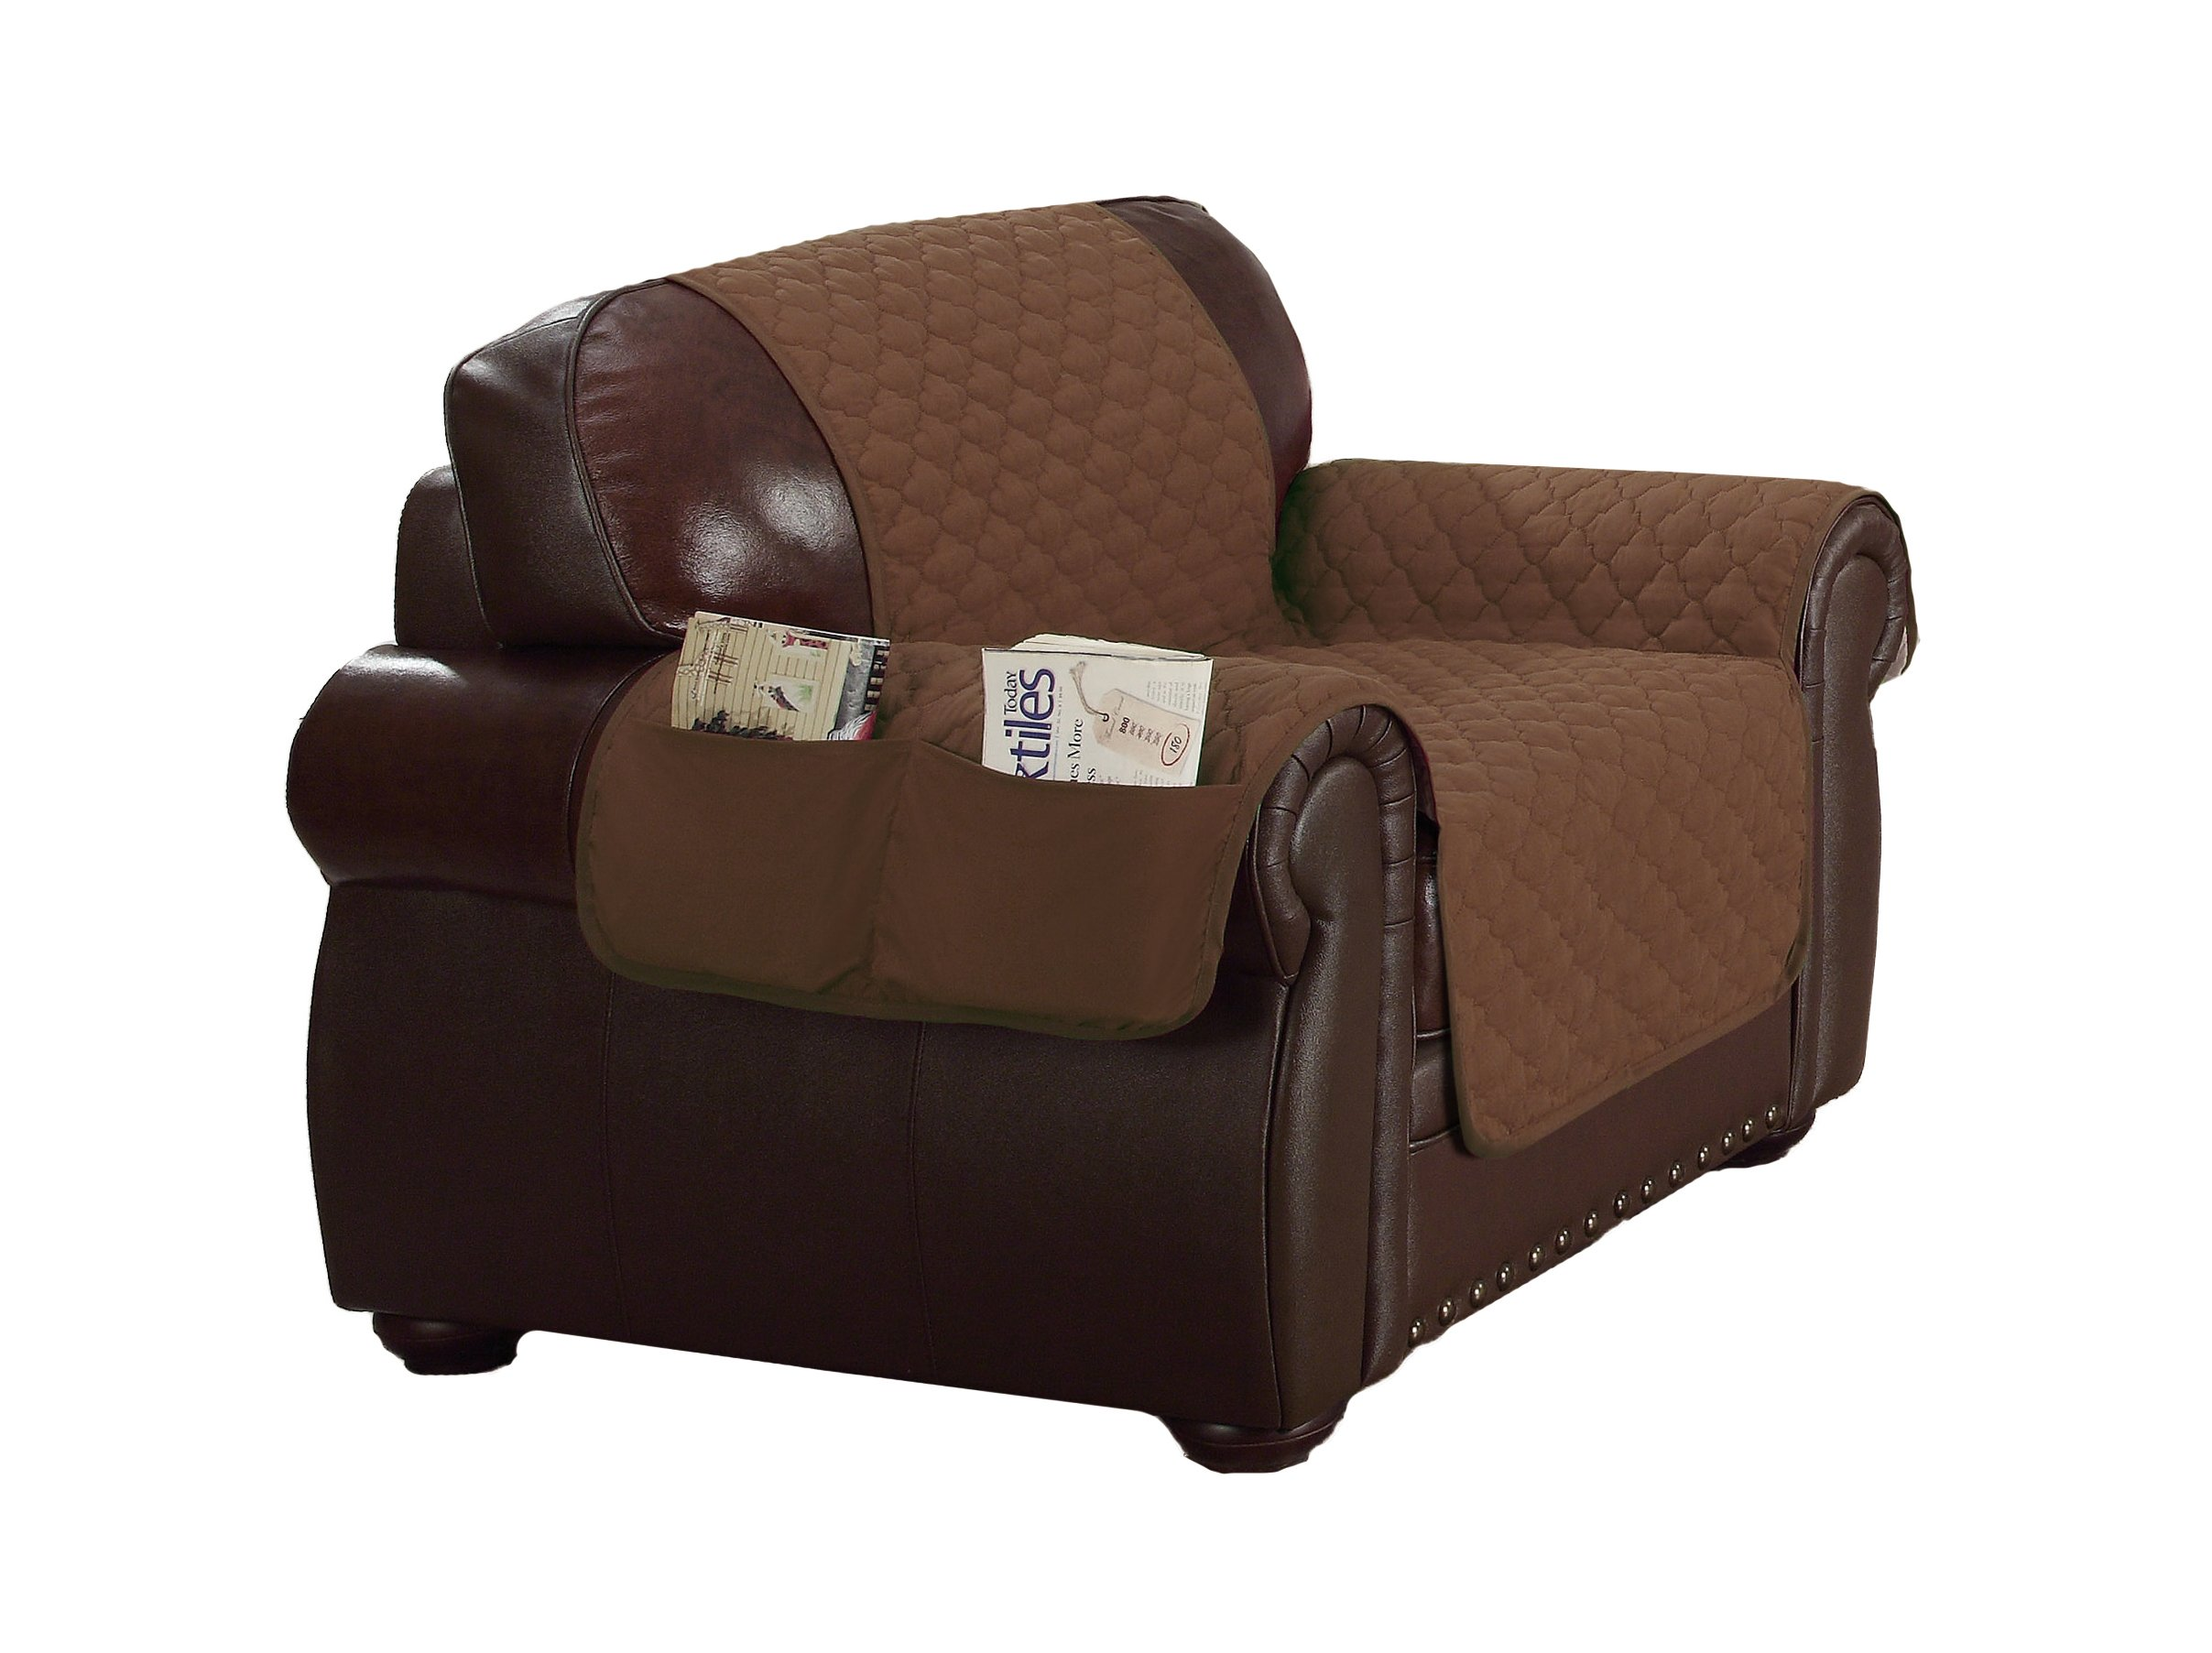 QUICK FIT -  Reynold Durable Quality Reversible Water Resistant Couch Cover for Dogs, Kids, Pets - Sofa Slipcover For Couch, Recliner, Loveseat or Chair , (CHAIR SIZE - BROWN & BEIGE)